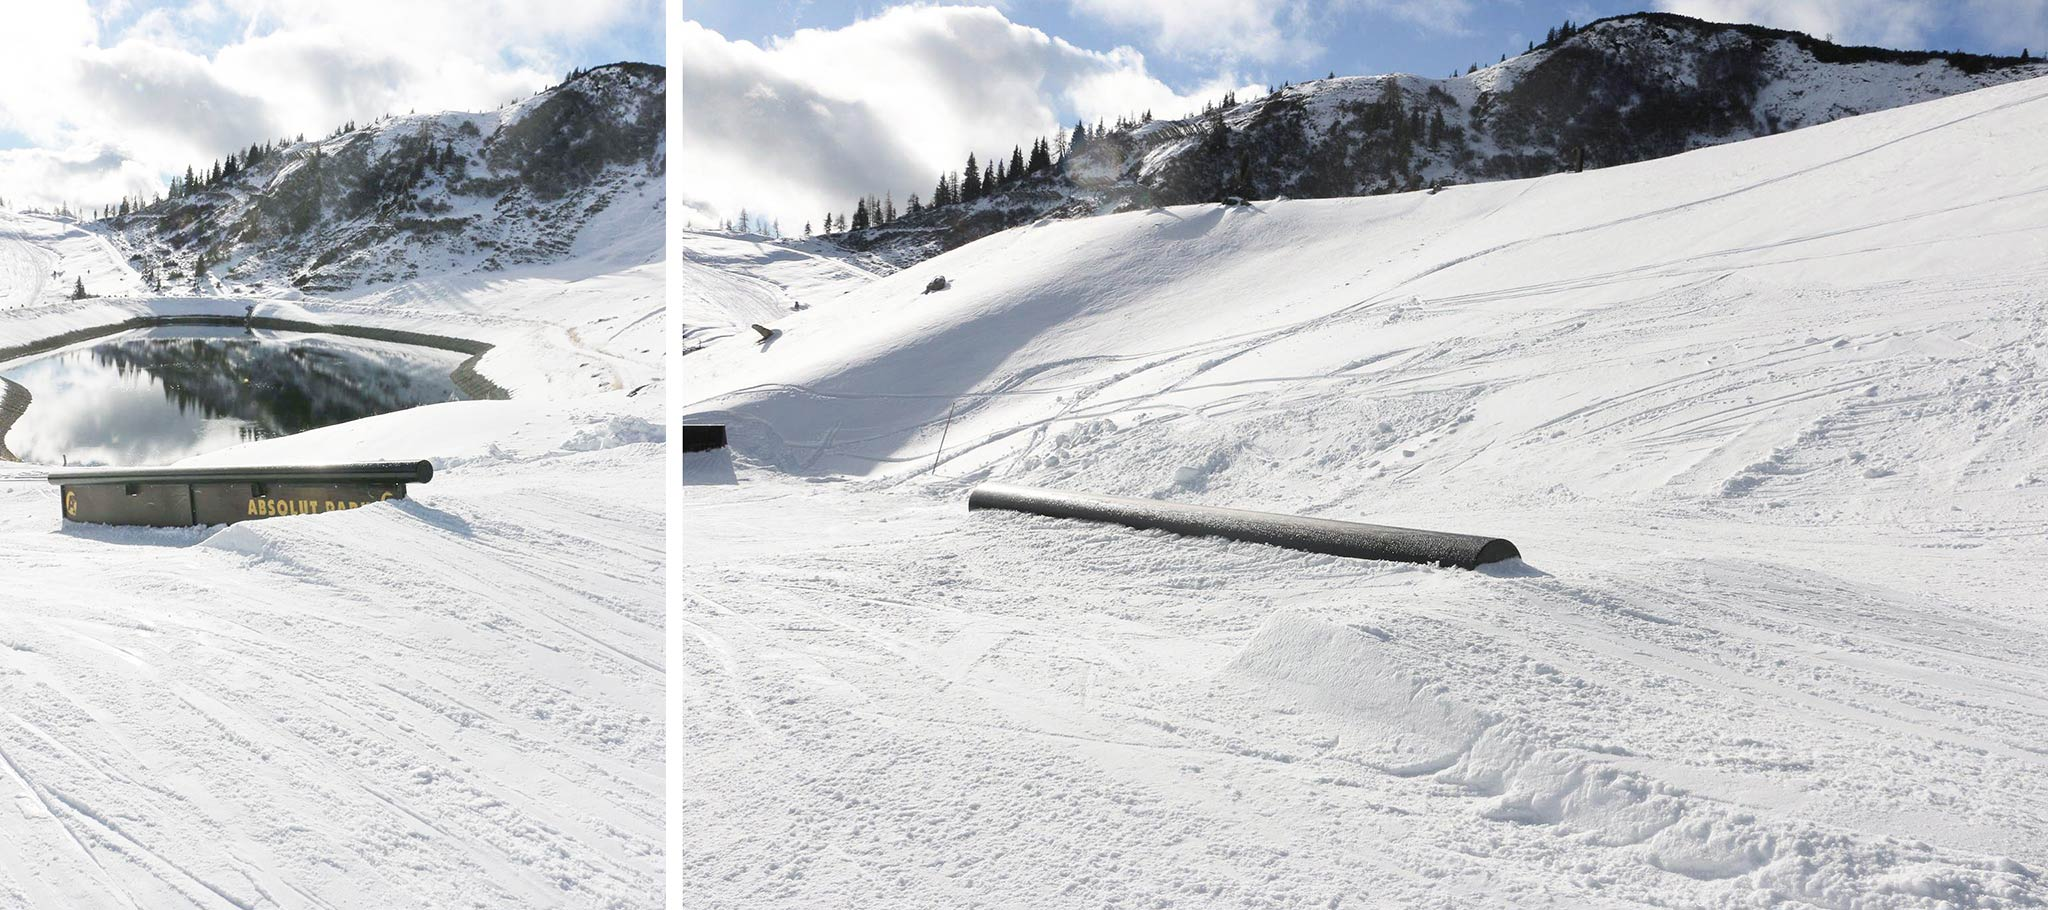 Kurzes Down Rail und Straight Tube - Foto: Absolut Park